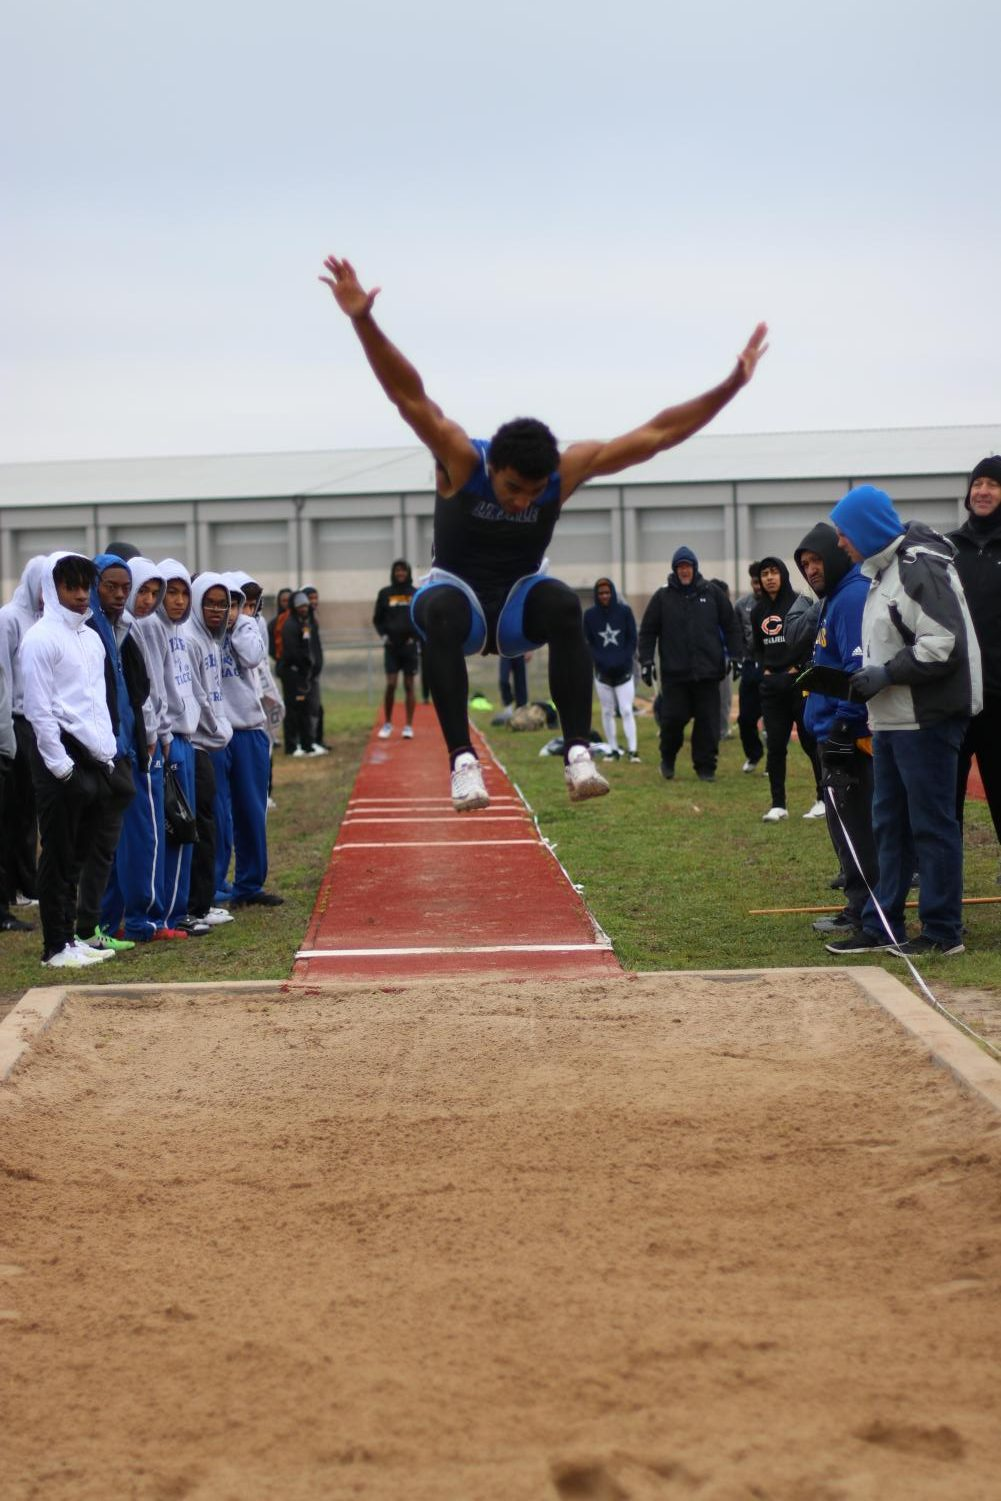 Sophomore Jordan Jenkins jumps into the long jump pit. He placed 6th in the meet at Sulphur Springs.